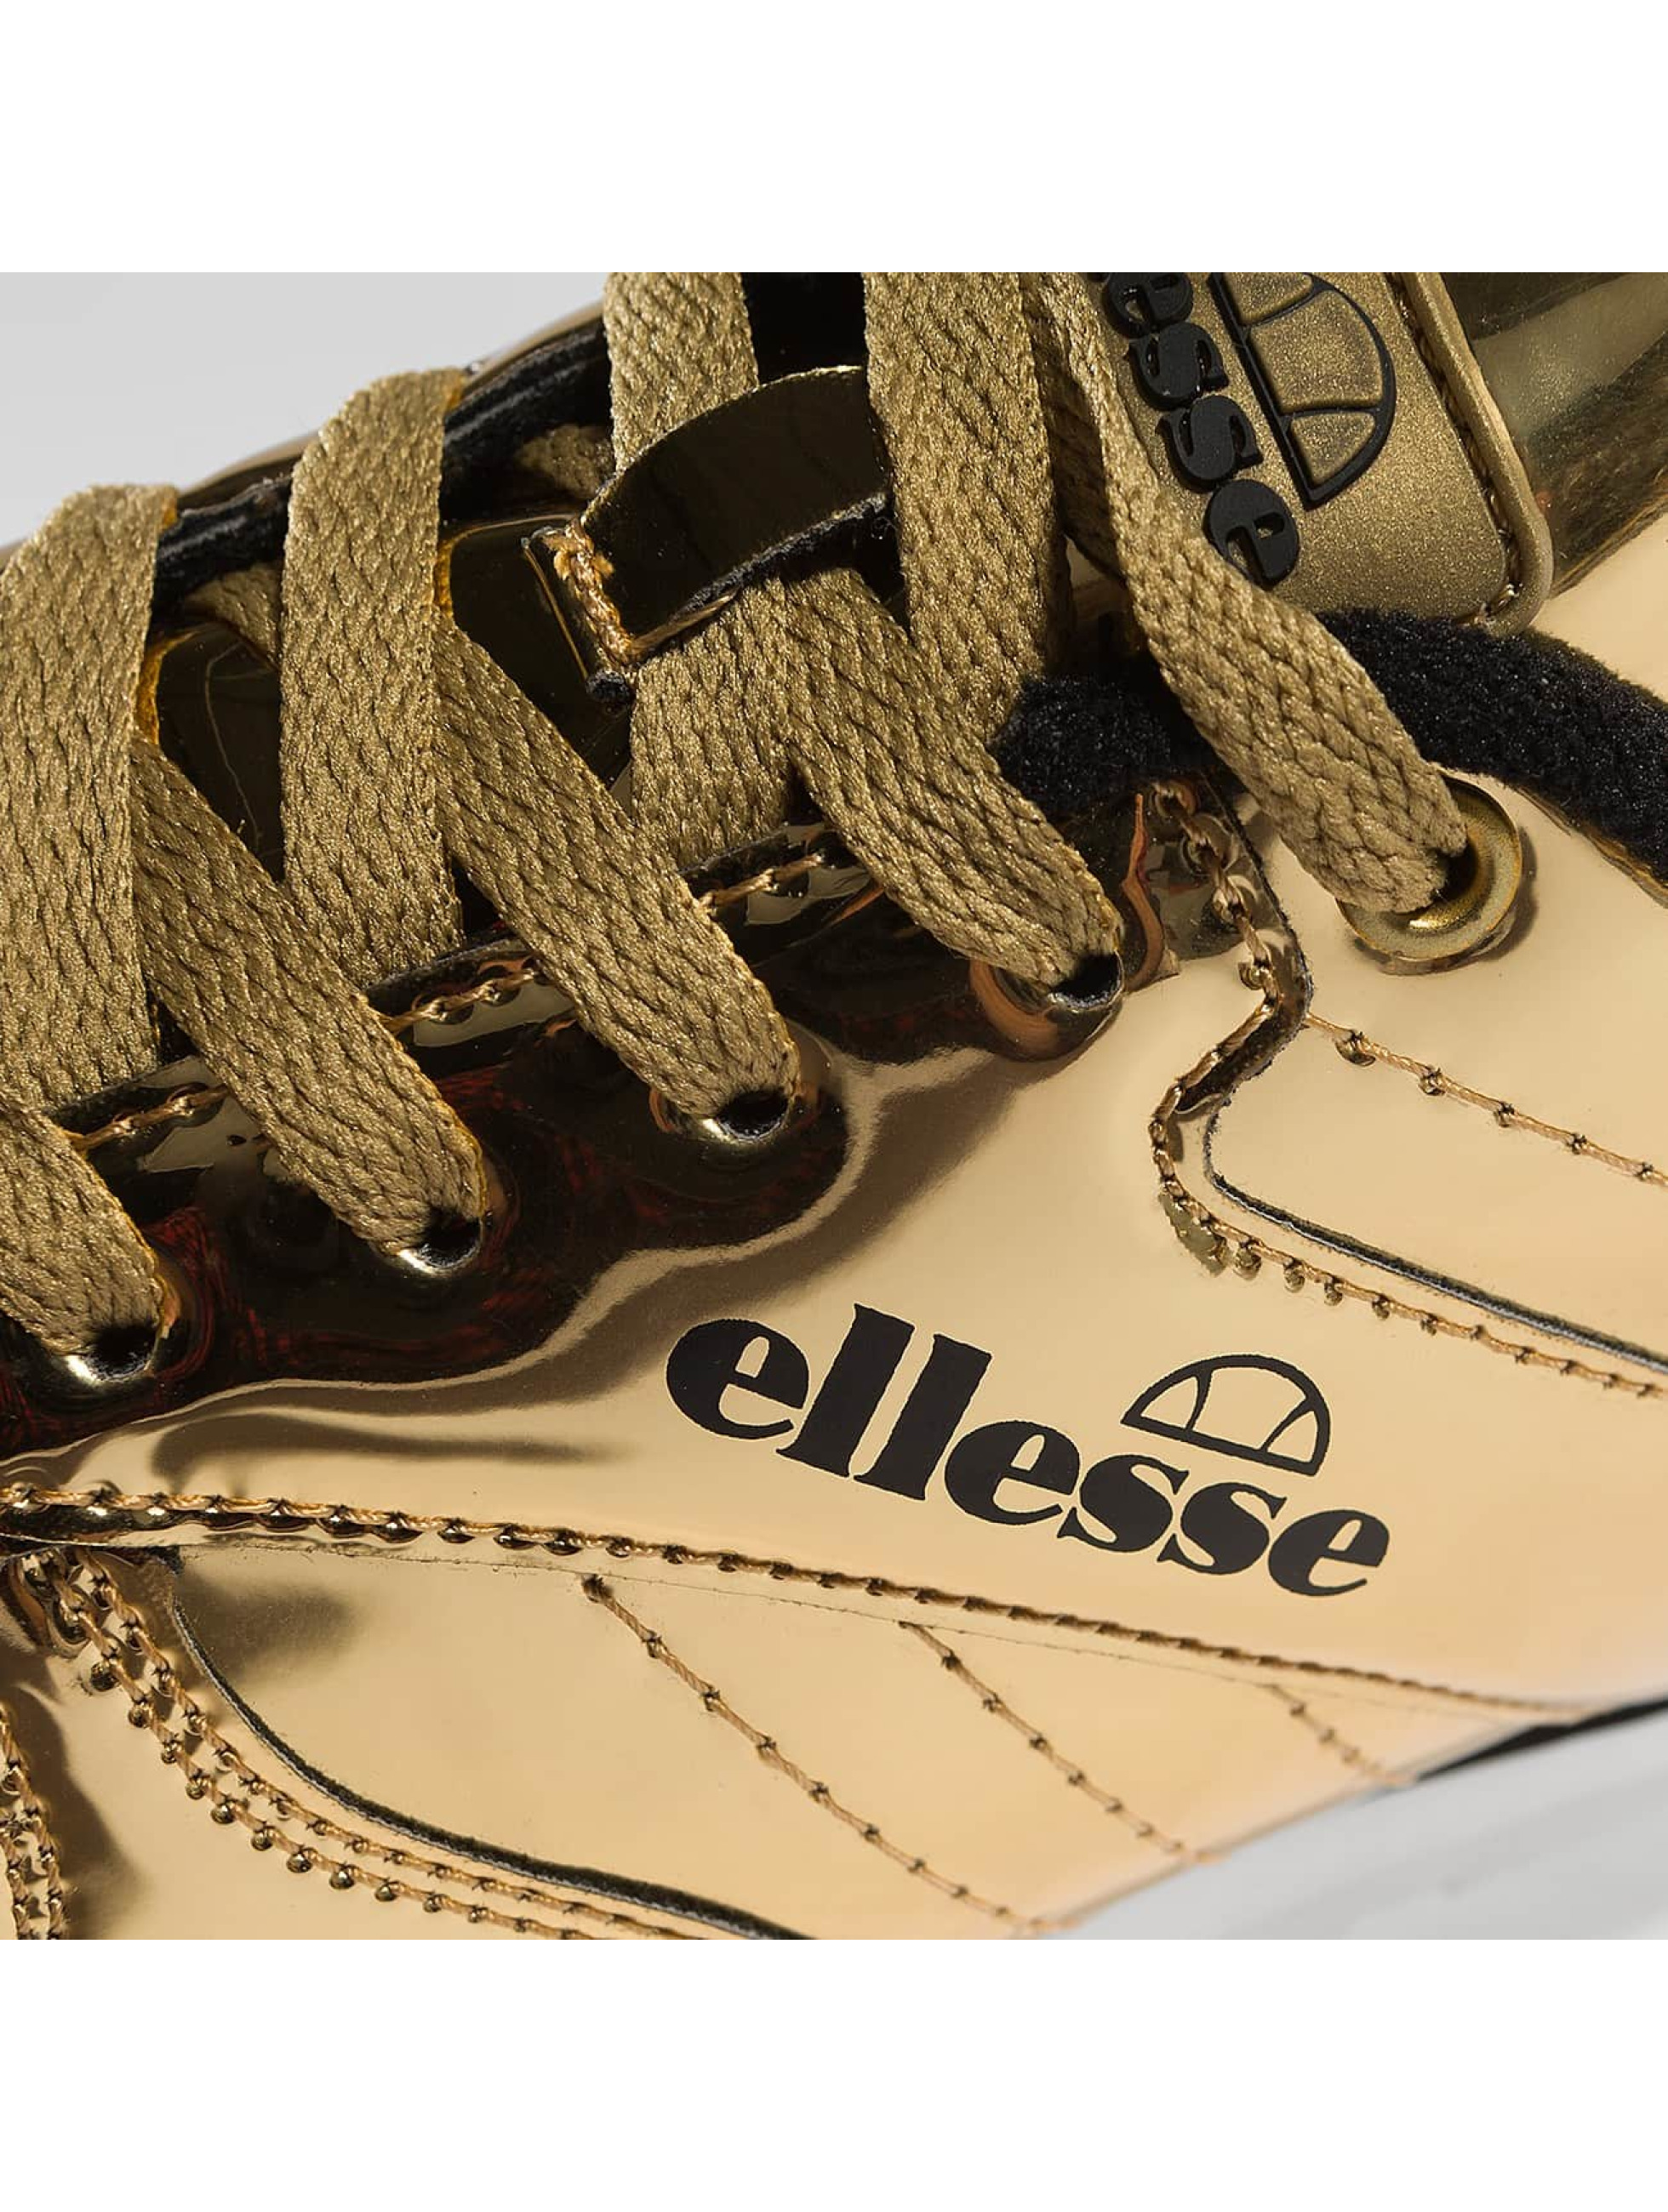 Ellesse Sneaker Heritage City Runner Metallic Runner oro